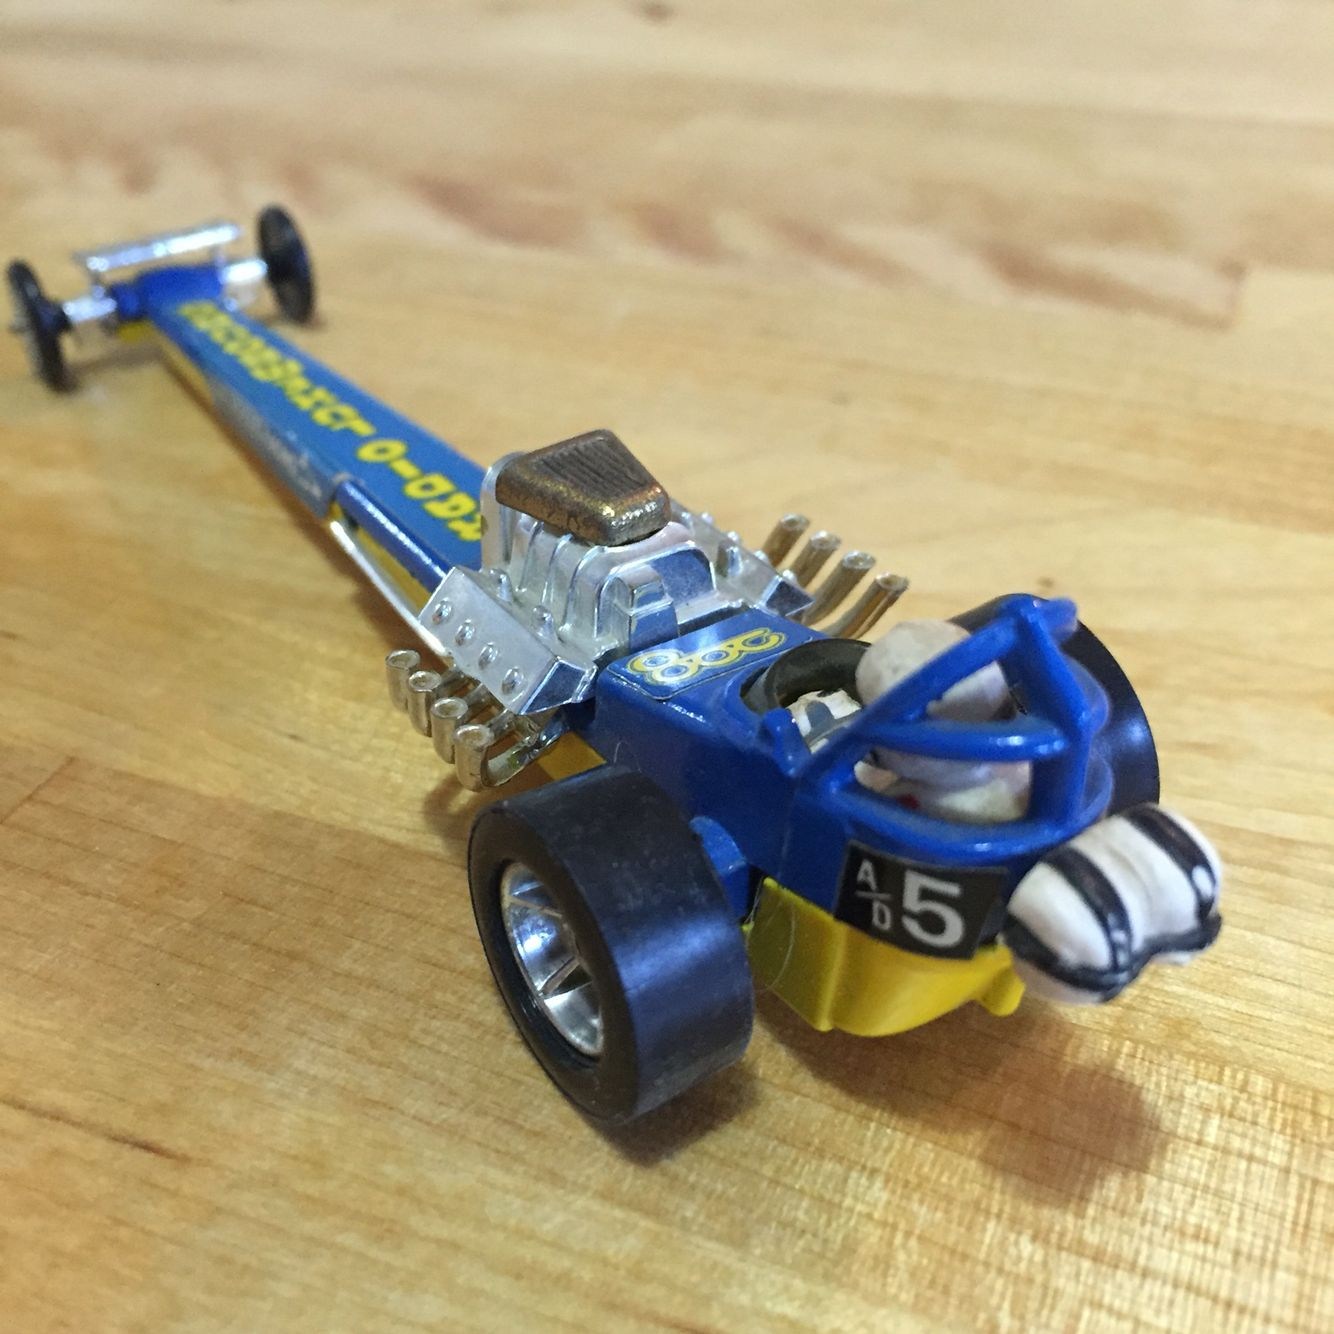 The Best Toy Dragsters